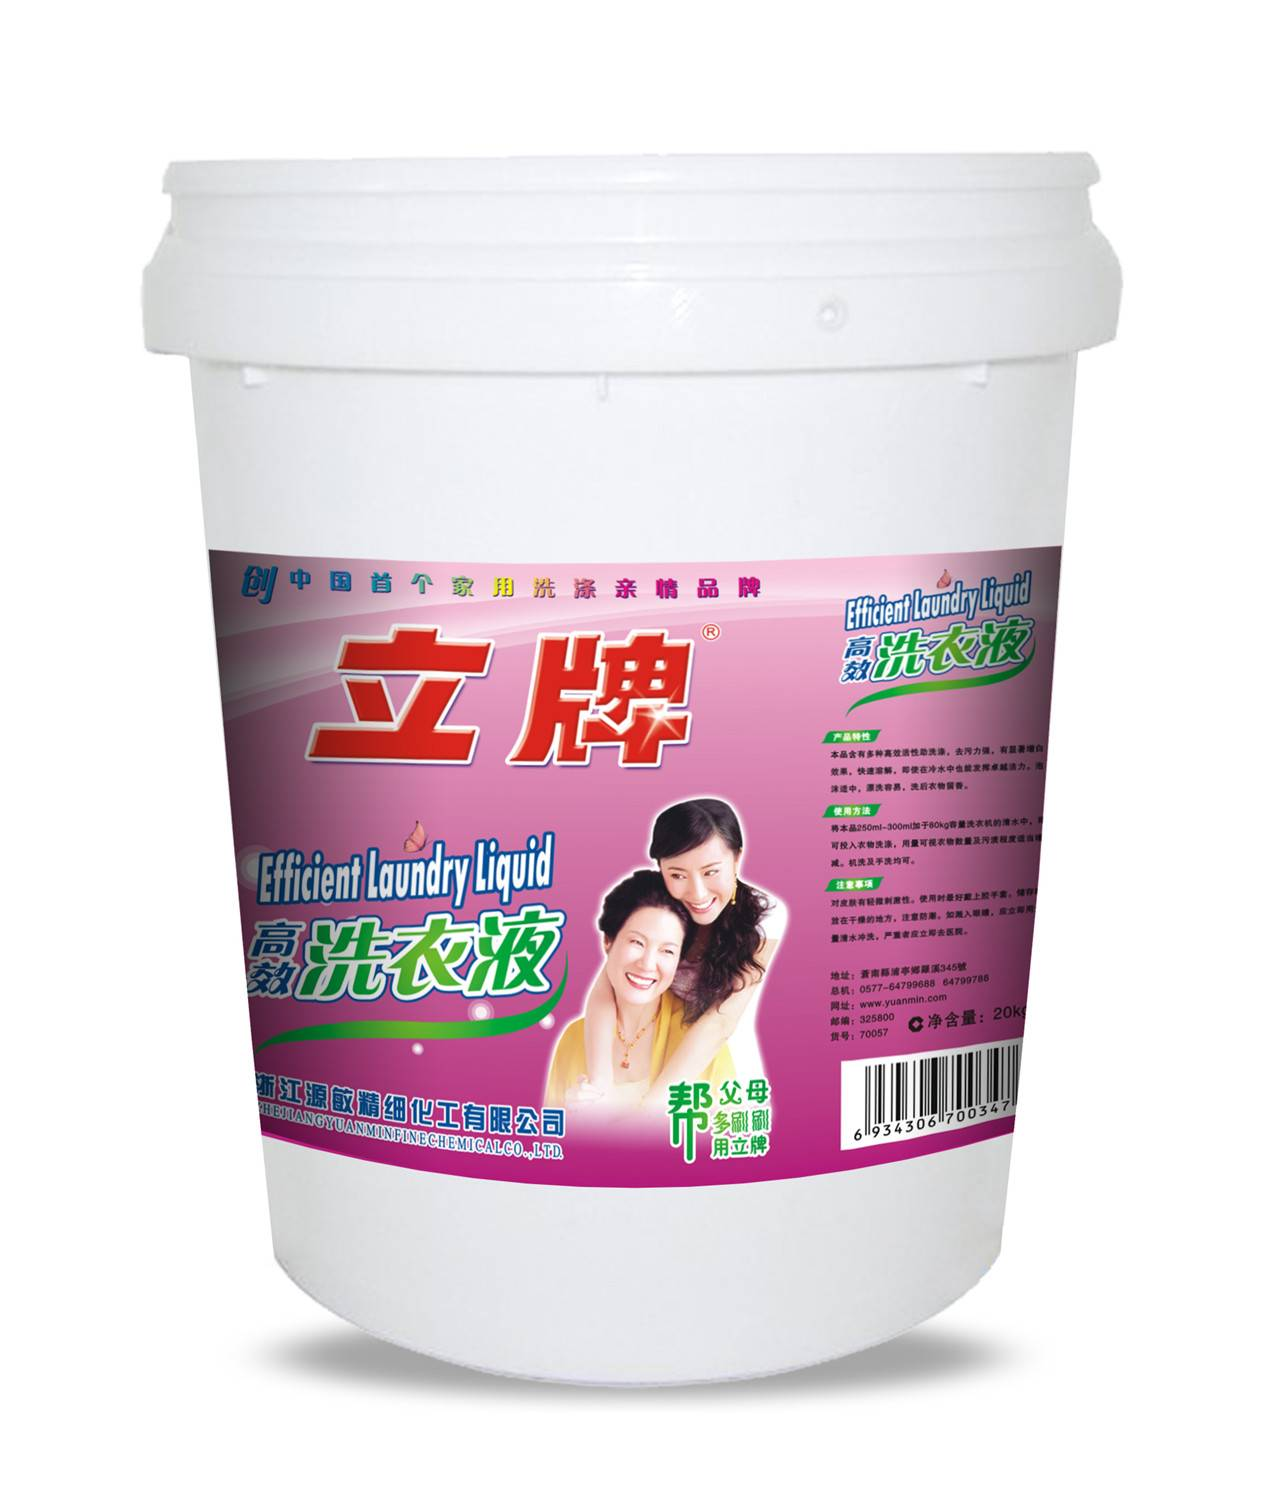 Efficient Laundry Liquid, 20KG, Daily chemicals, OEM, The laundry and hotel use.